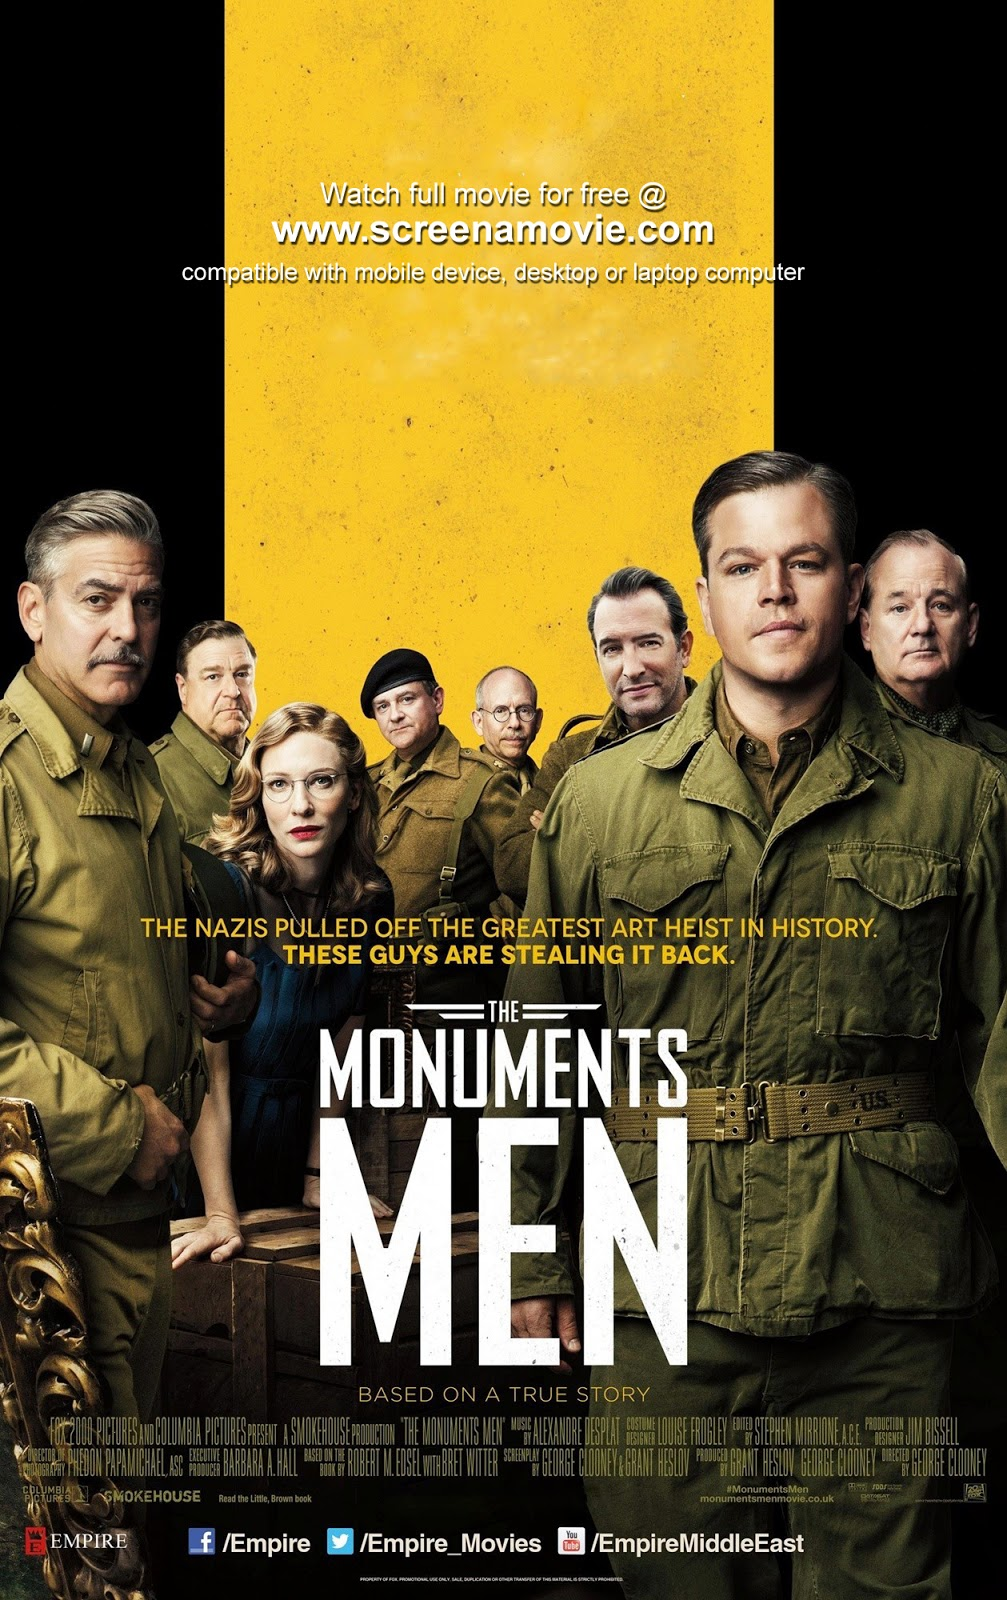 The Monuments Men_@screenamovie